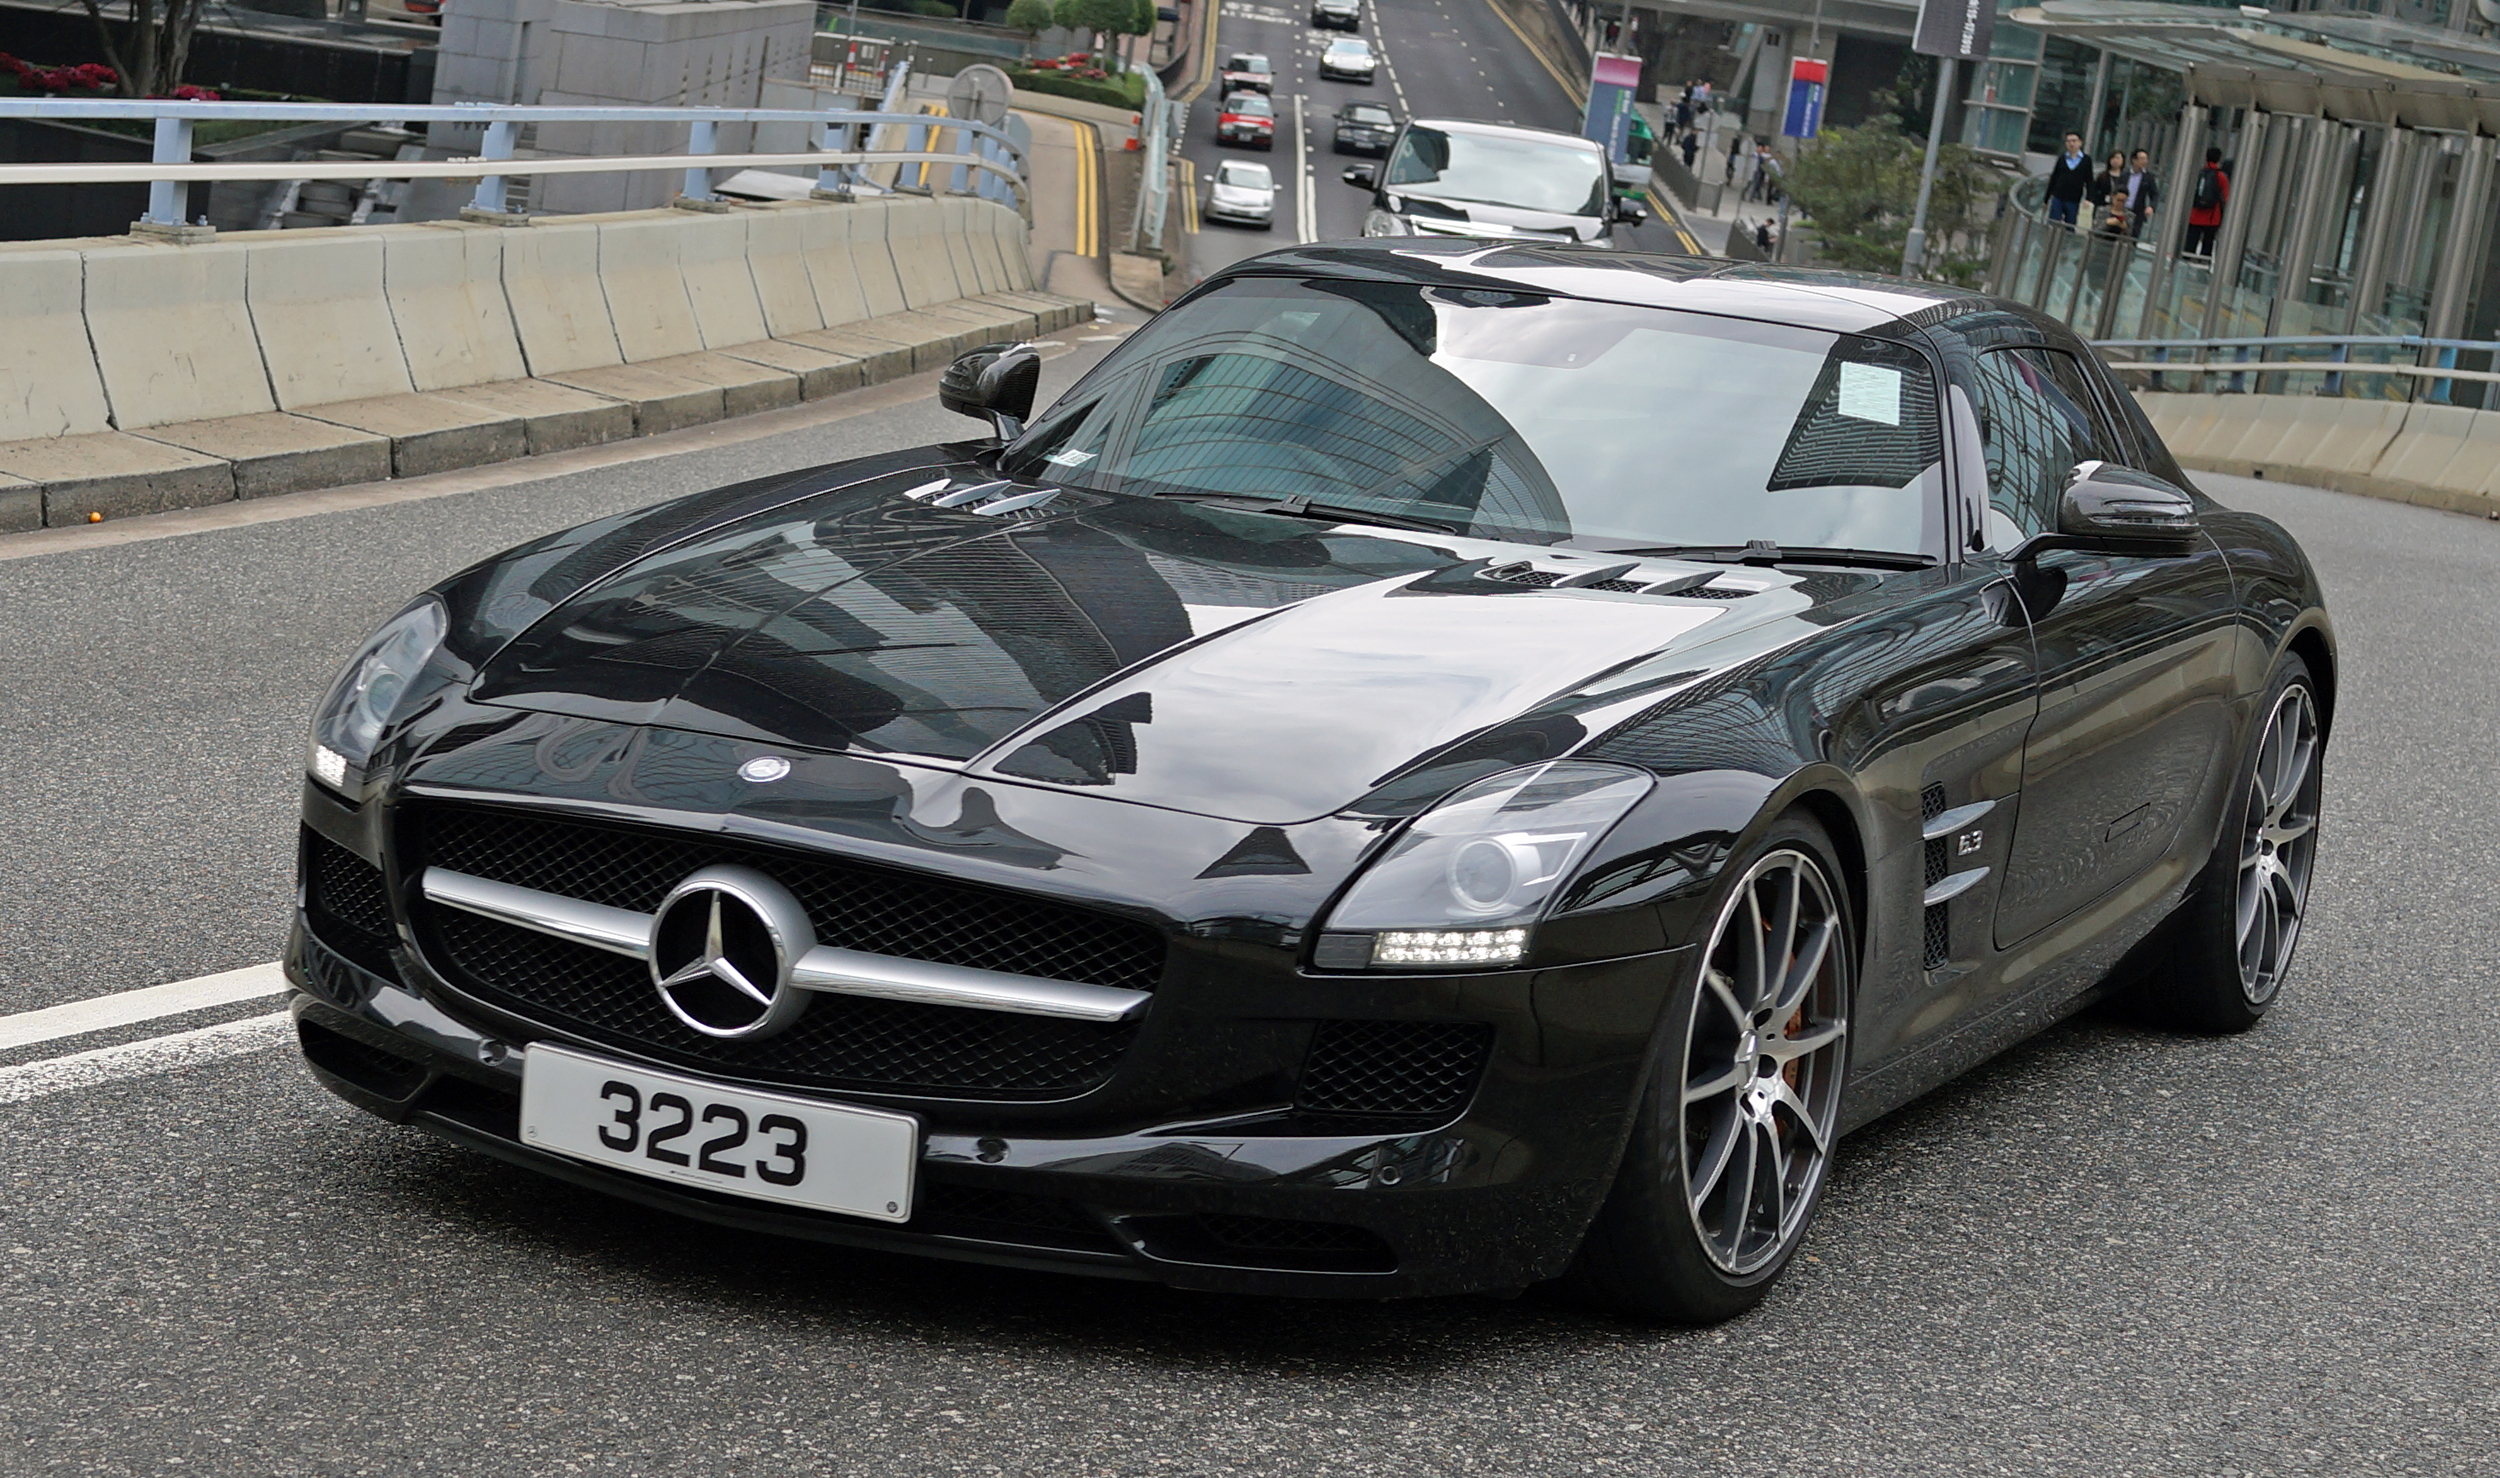 My favourite Mercedes Benz car, the gull wing SLS, an amazing car!!